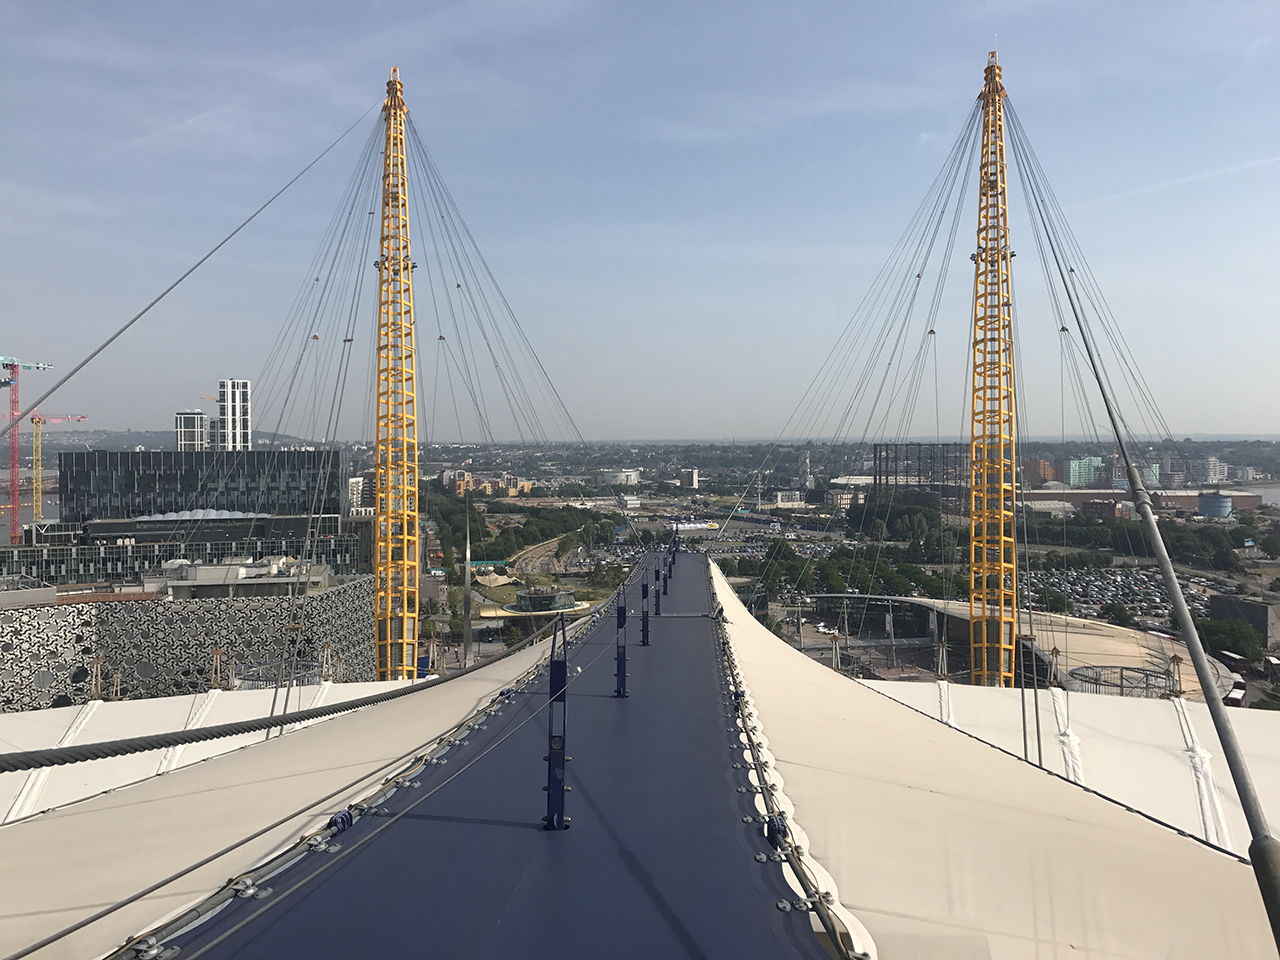 Up at the O2 Walkway